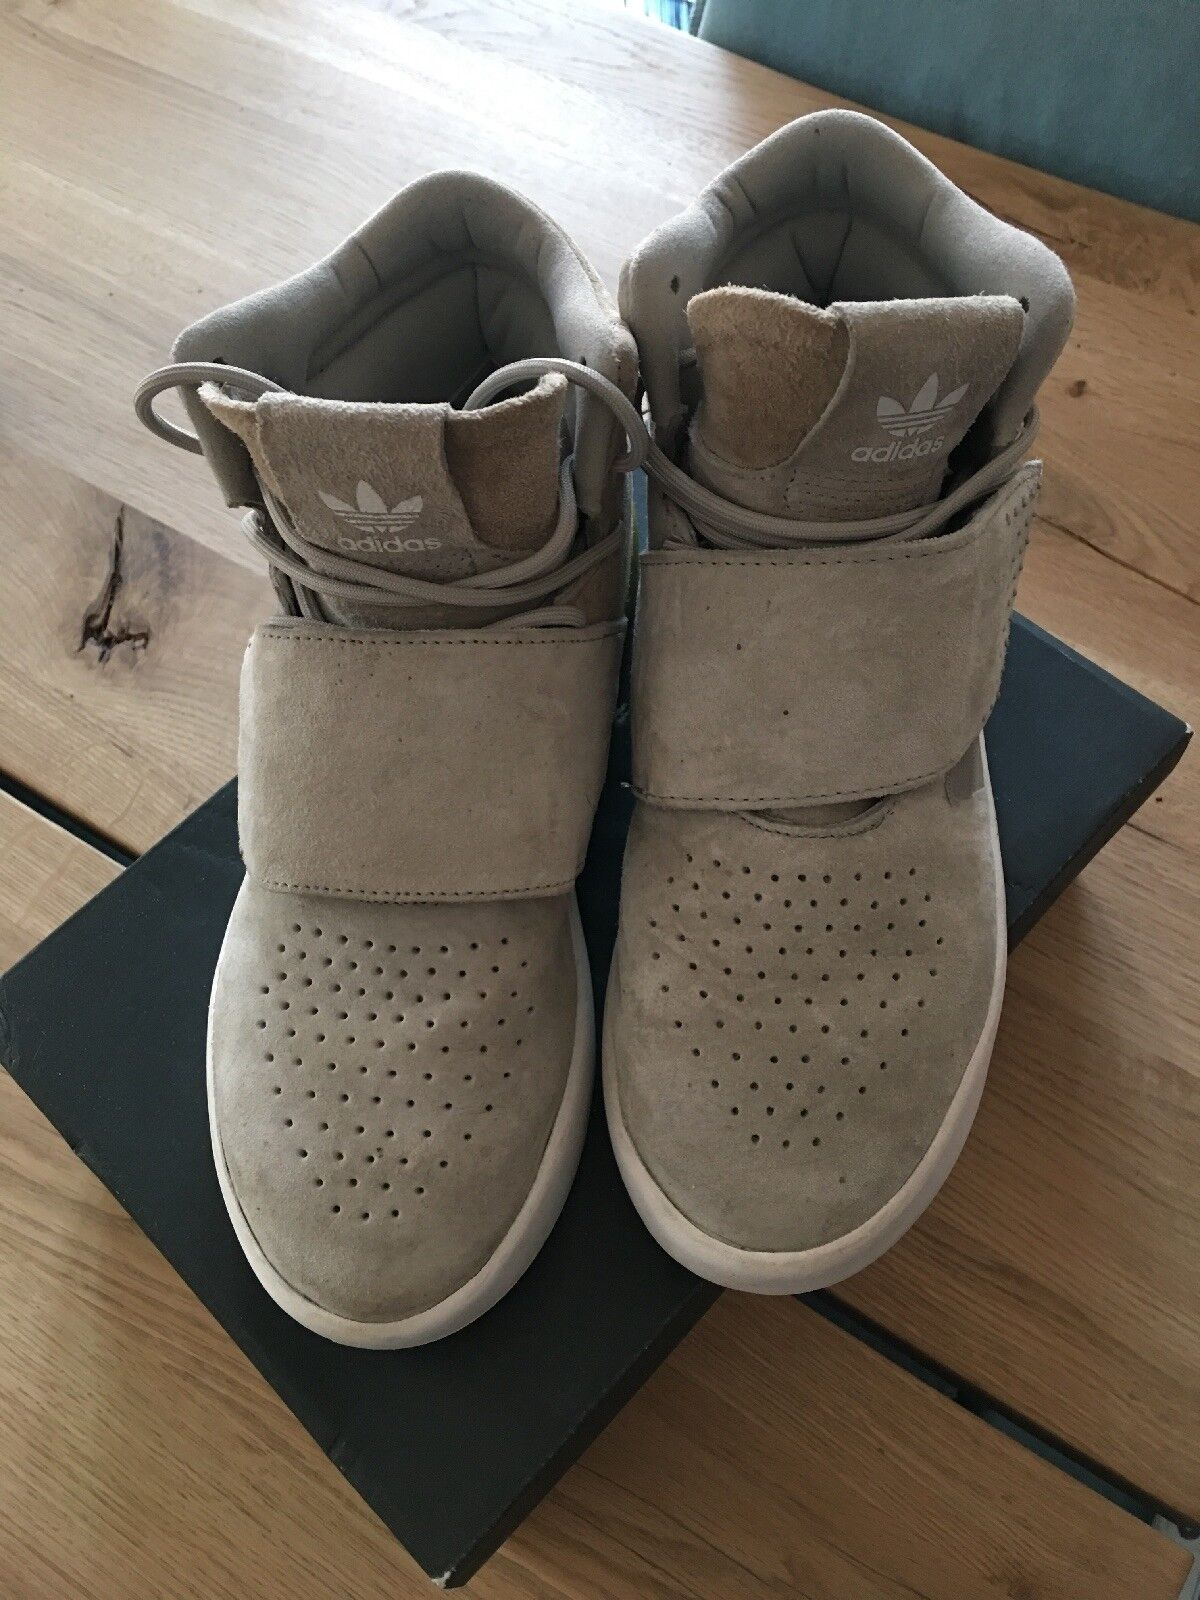 Man's/Woman's and adidas tubular ortholite 37.5 High-quality Elegant and Man's/Woman's sturdy packaging Superb craftsmanship 41e2e7